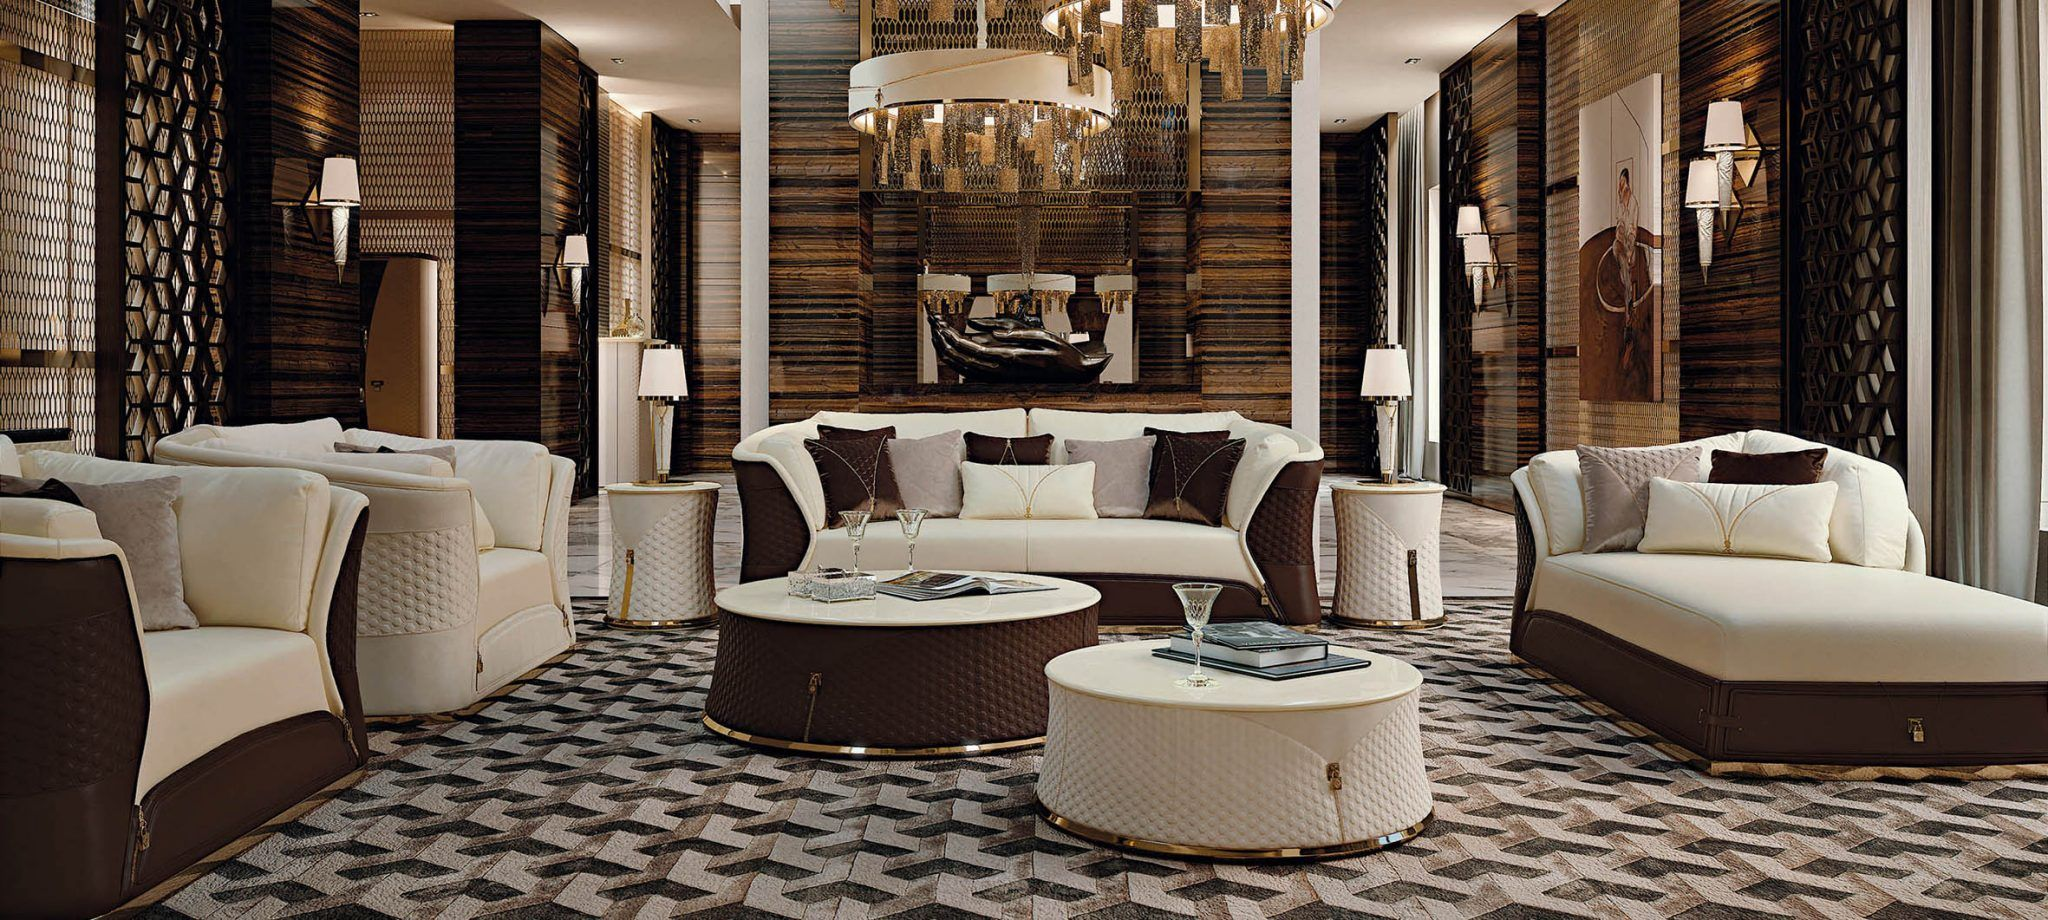 Vogue Sofa Turri Made In Italy Furniture Luxury Mansions Interior Luxury Living Room Luxe Living Room